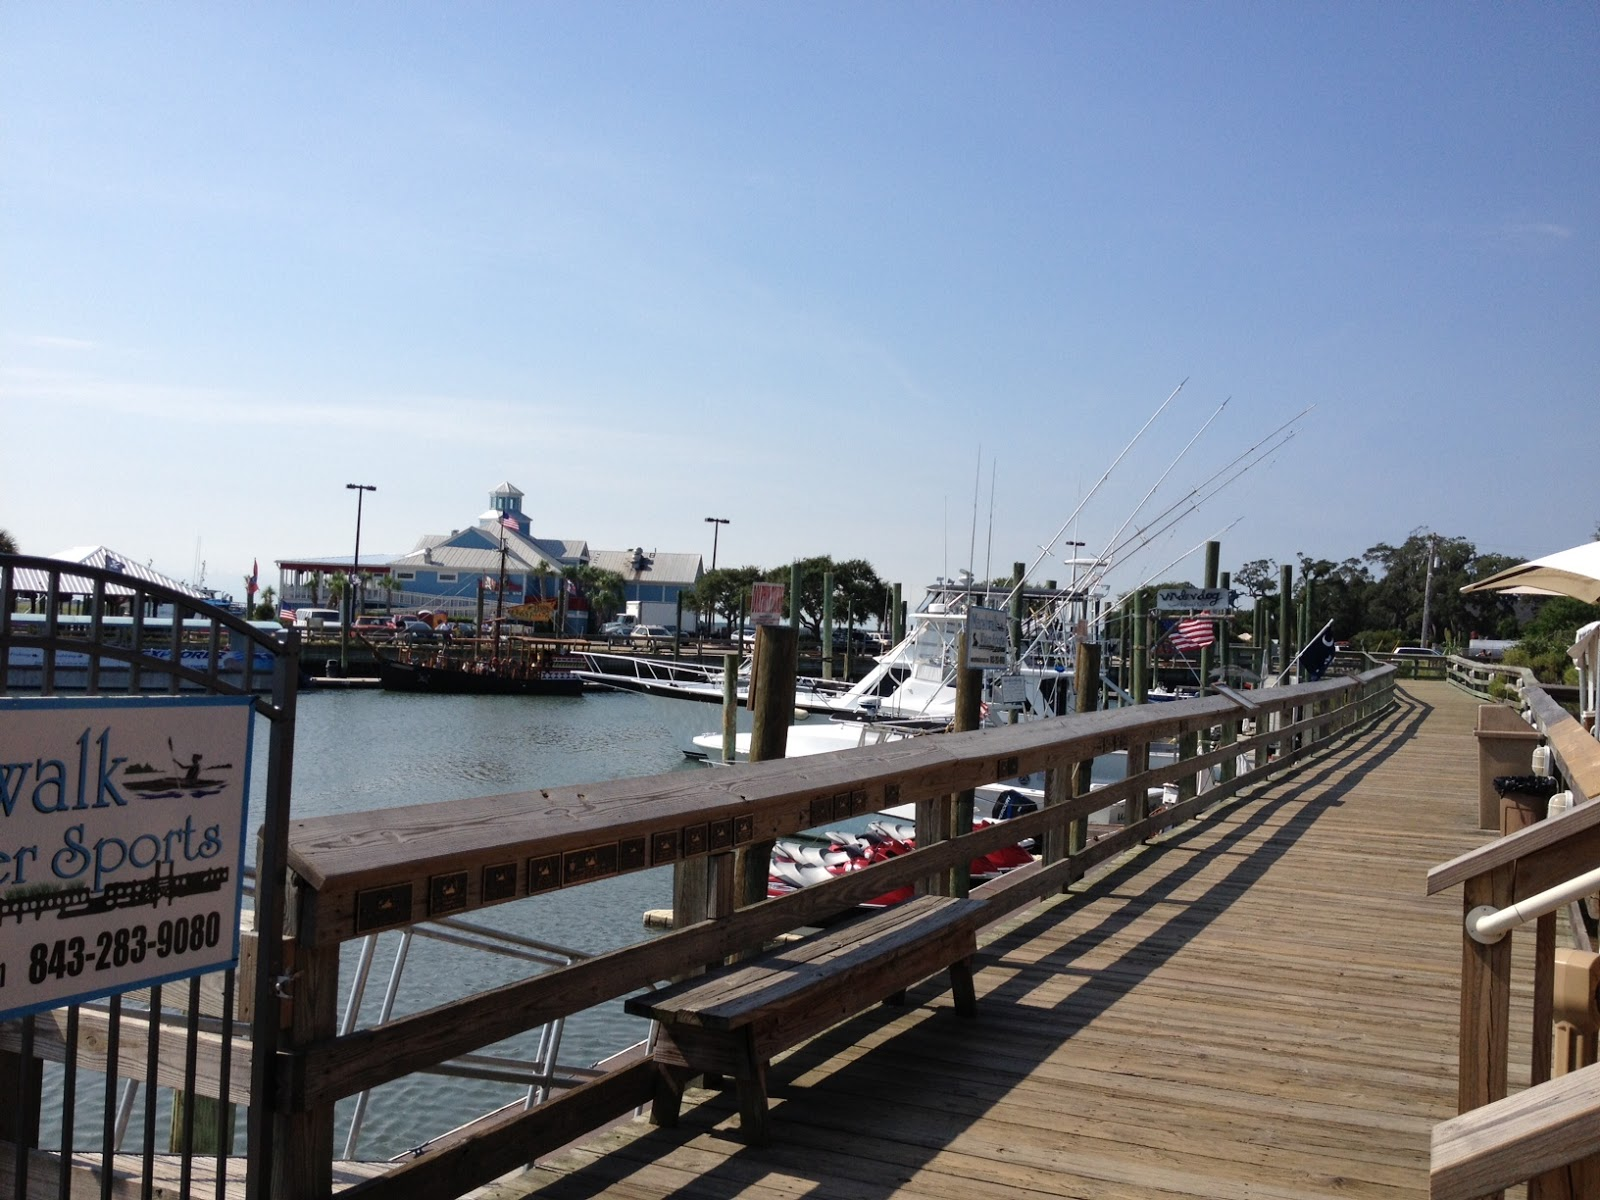 Beside The Crazy Sister Marina And Wicked Tuna Restaurant Sightseer Can Walk Along An Outstretched Pier Also Stroll On Marsh